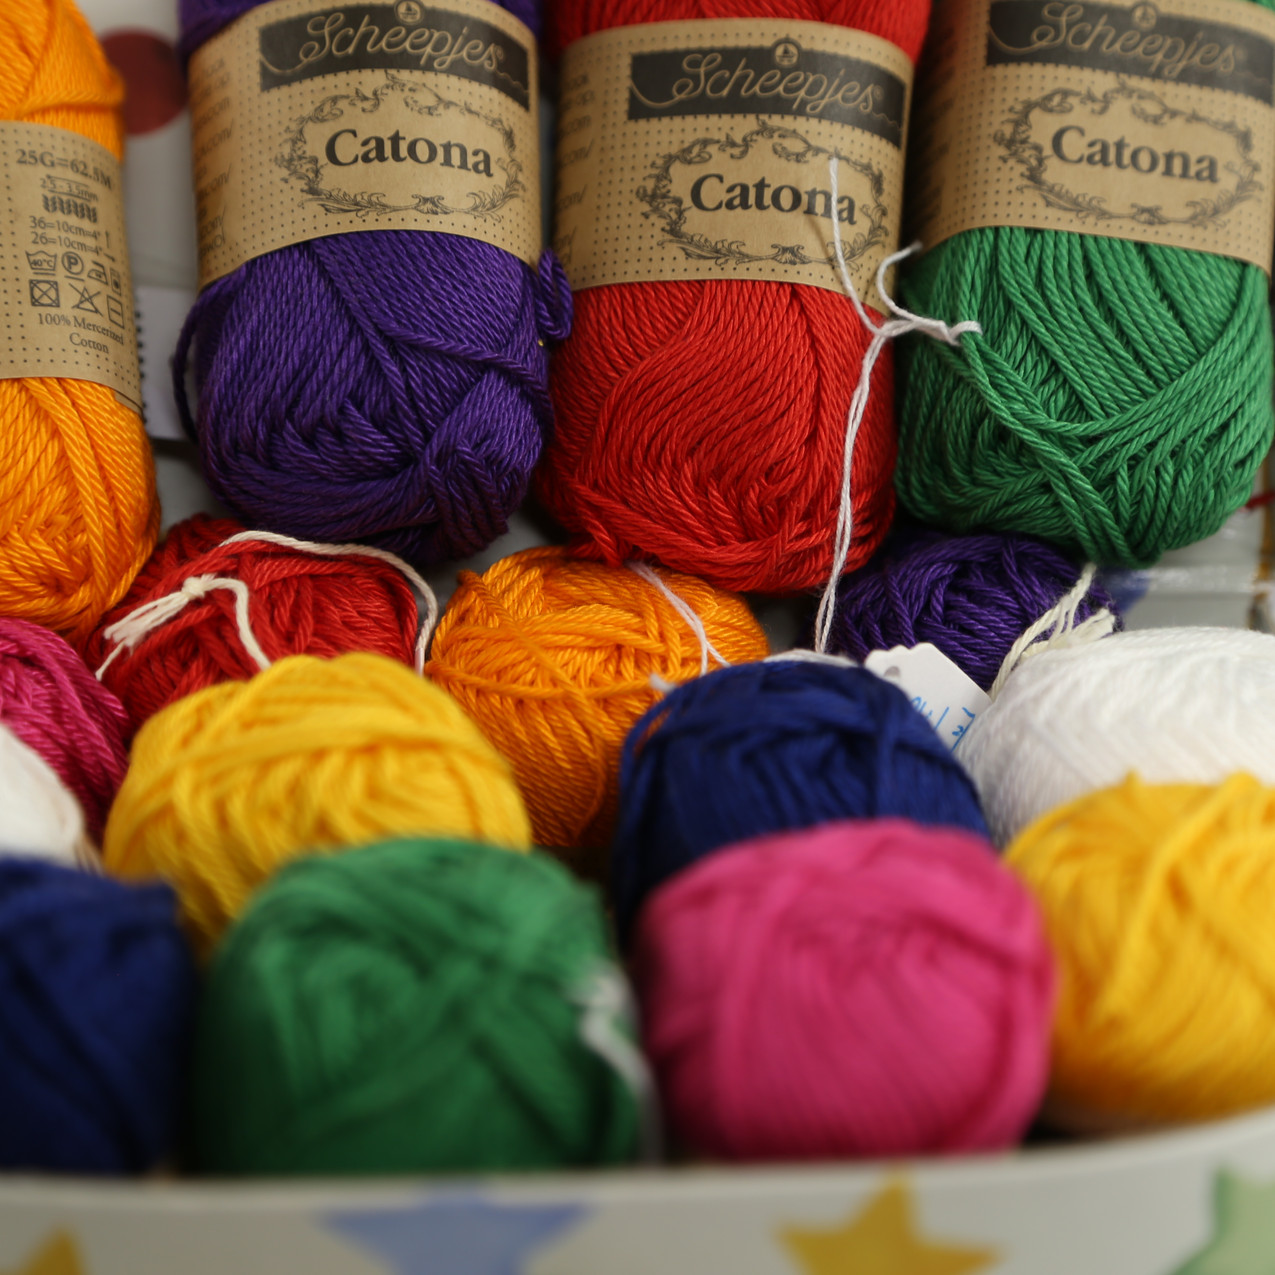 Colourful Catona wool